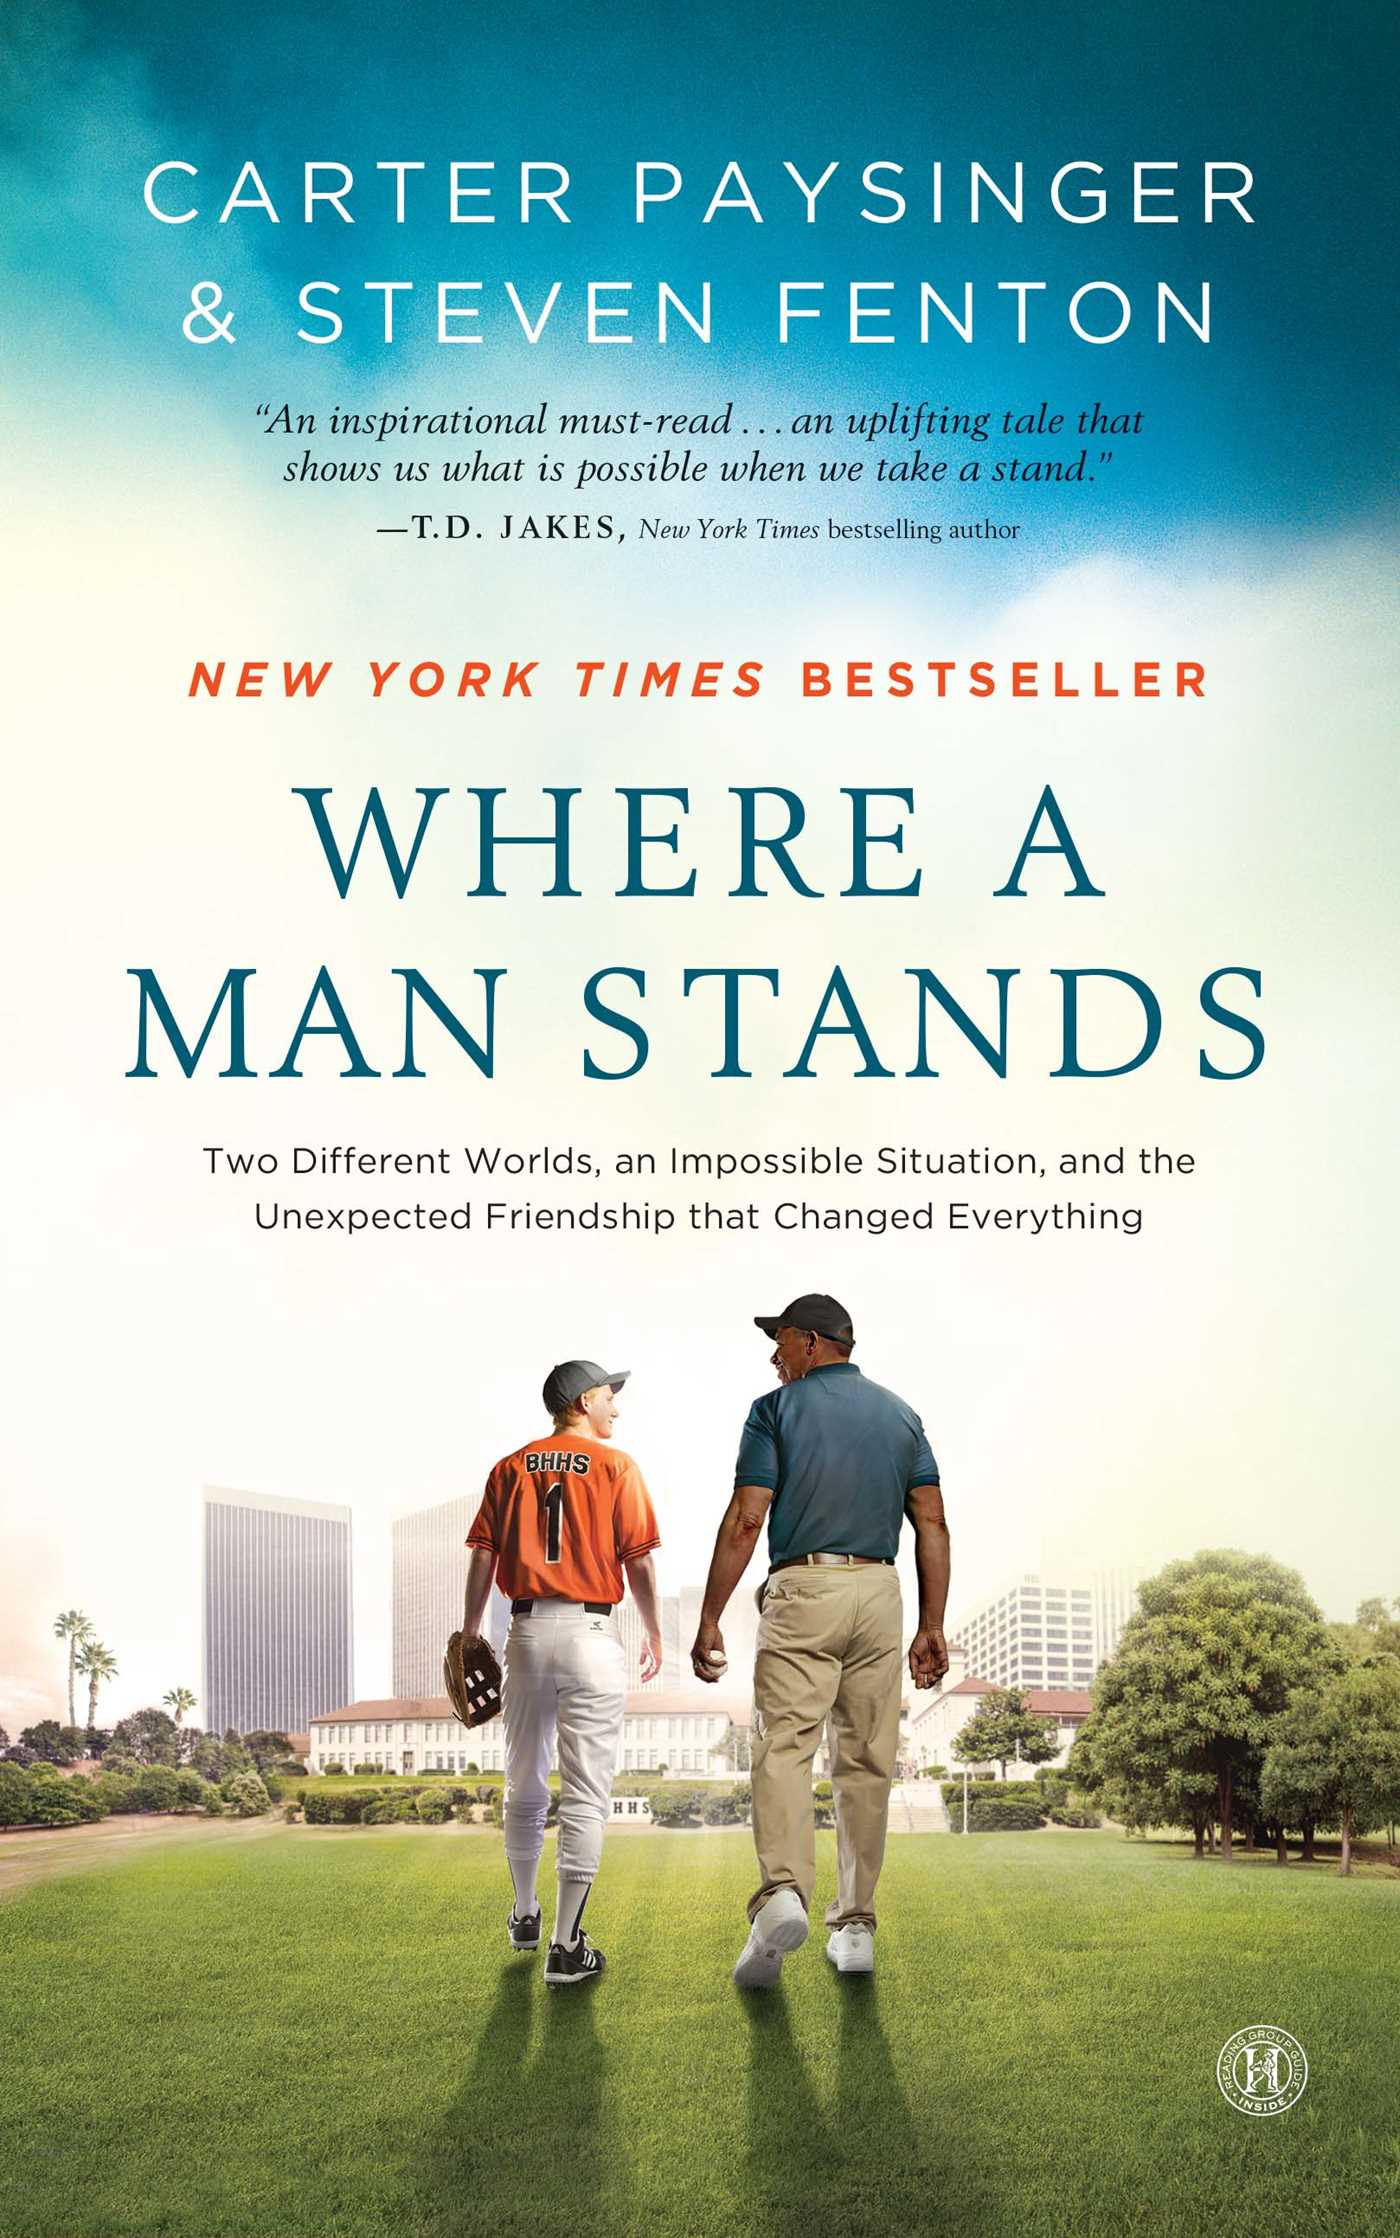 Where a man stands 9781476711416 hr